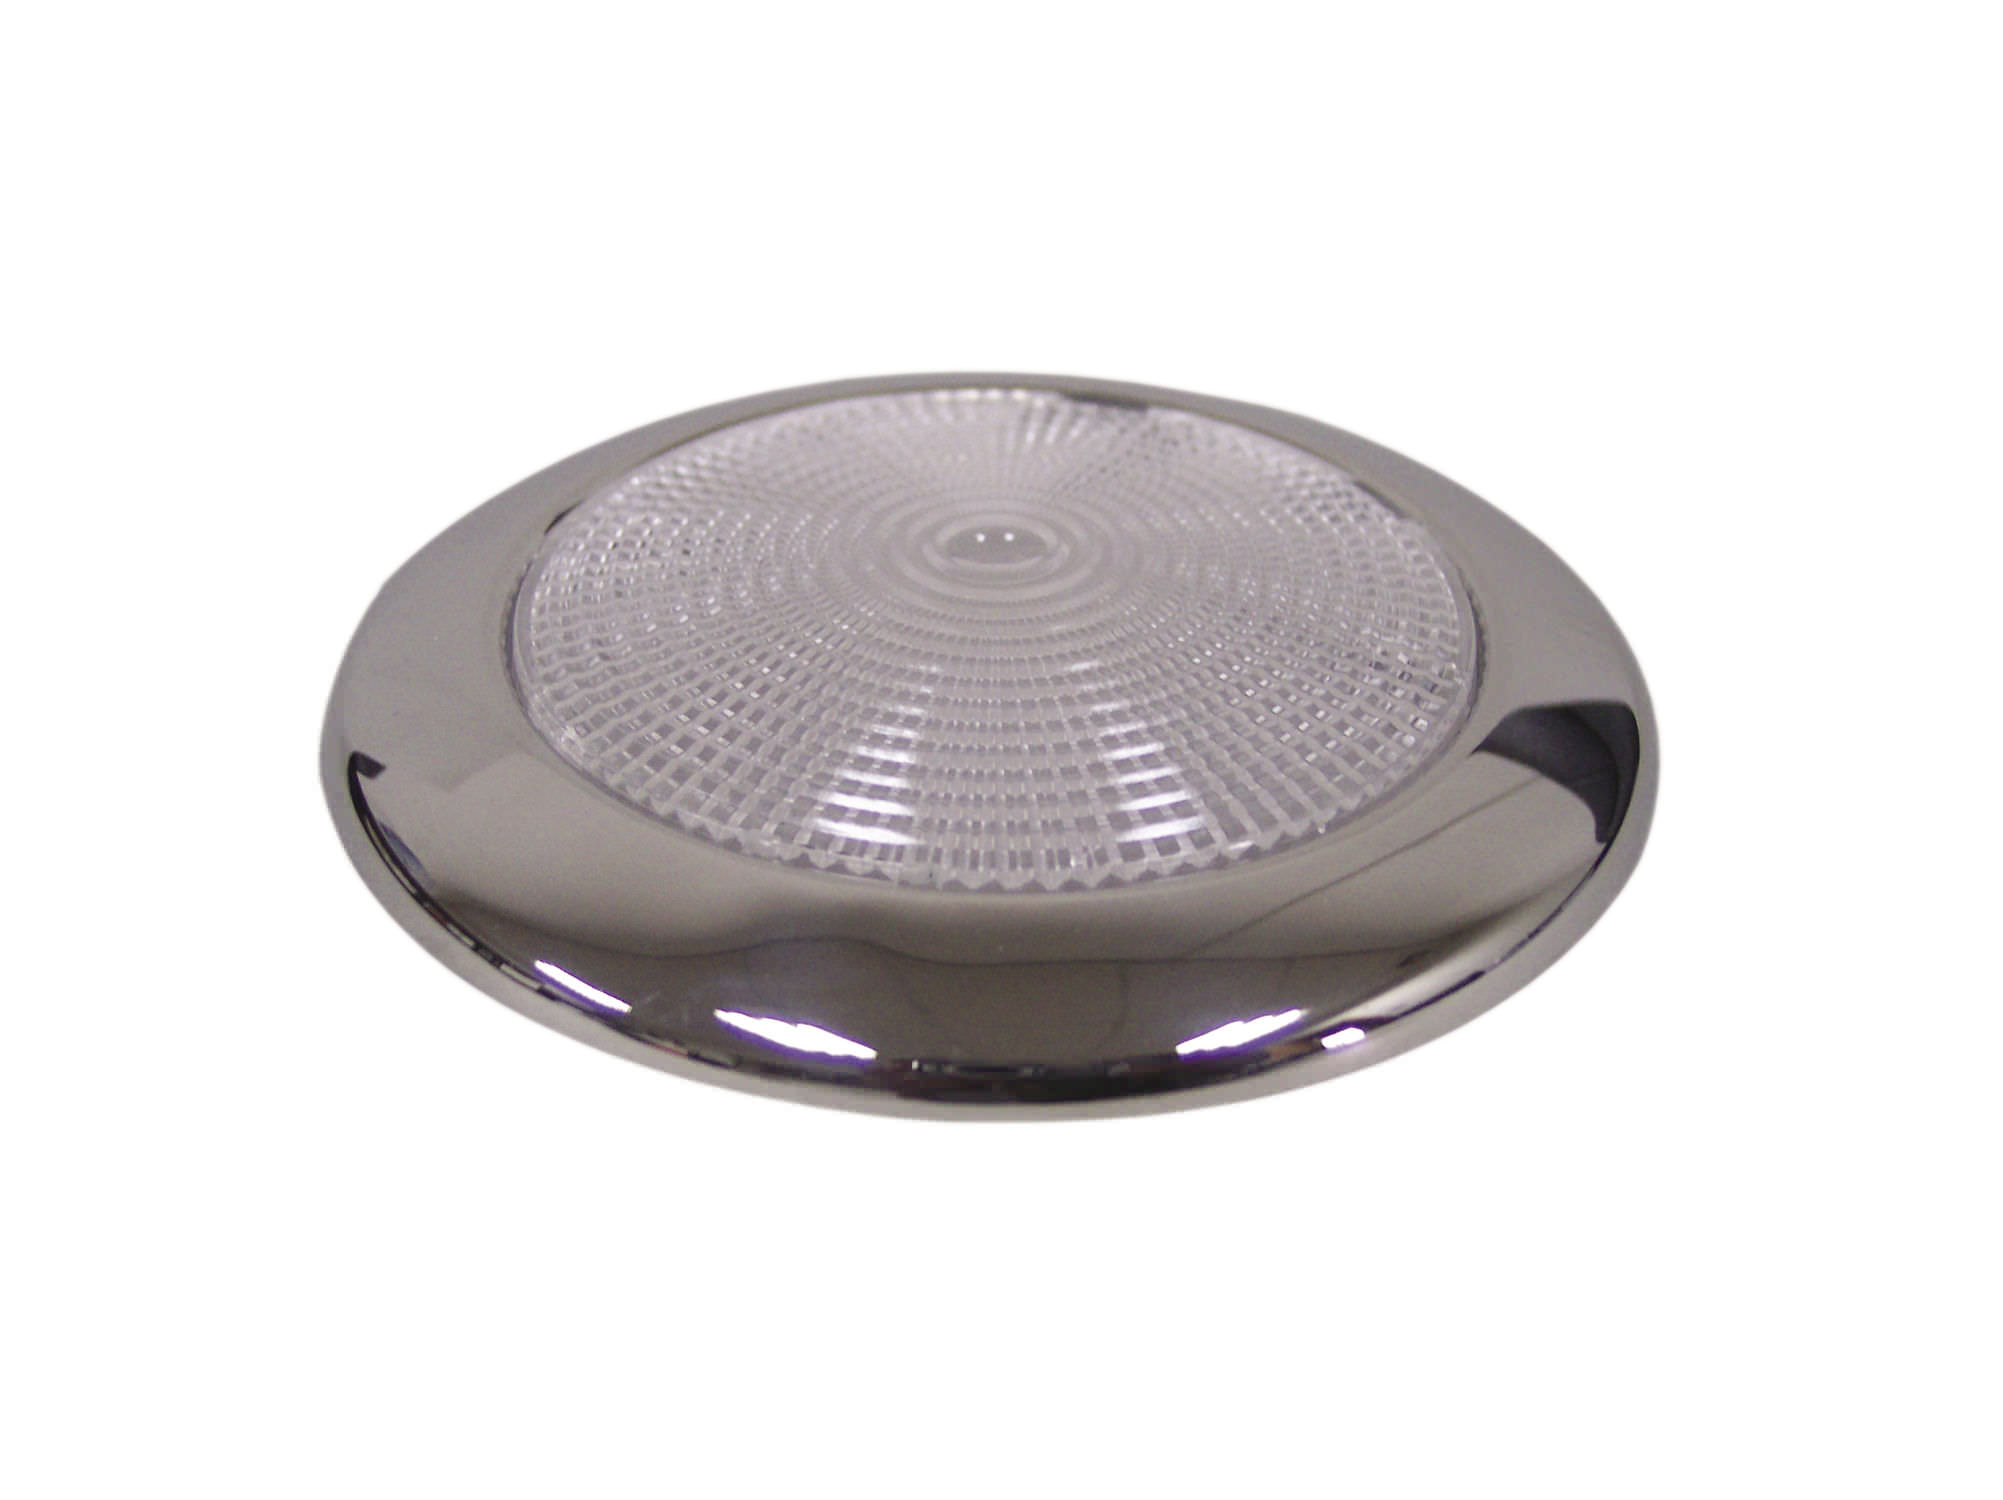 Plafoniera Da Esterno Led : Plafoniera da esterno per barca led wh wr swh aaa